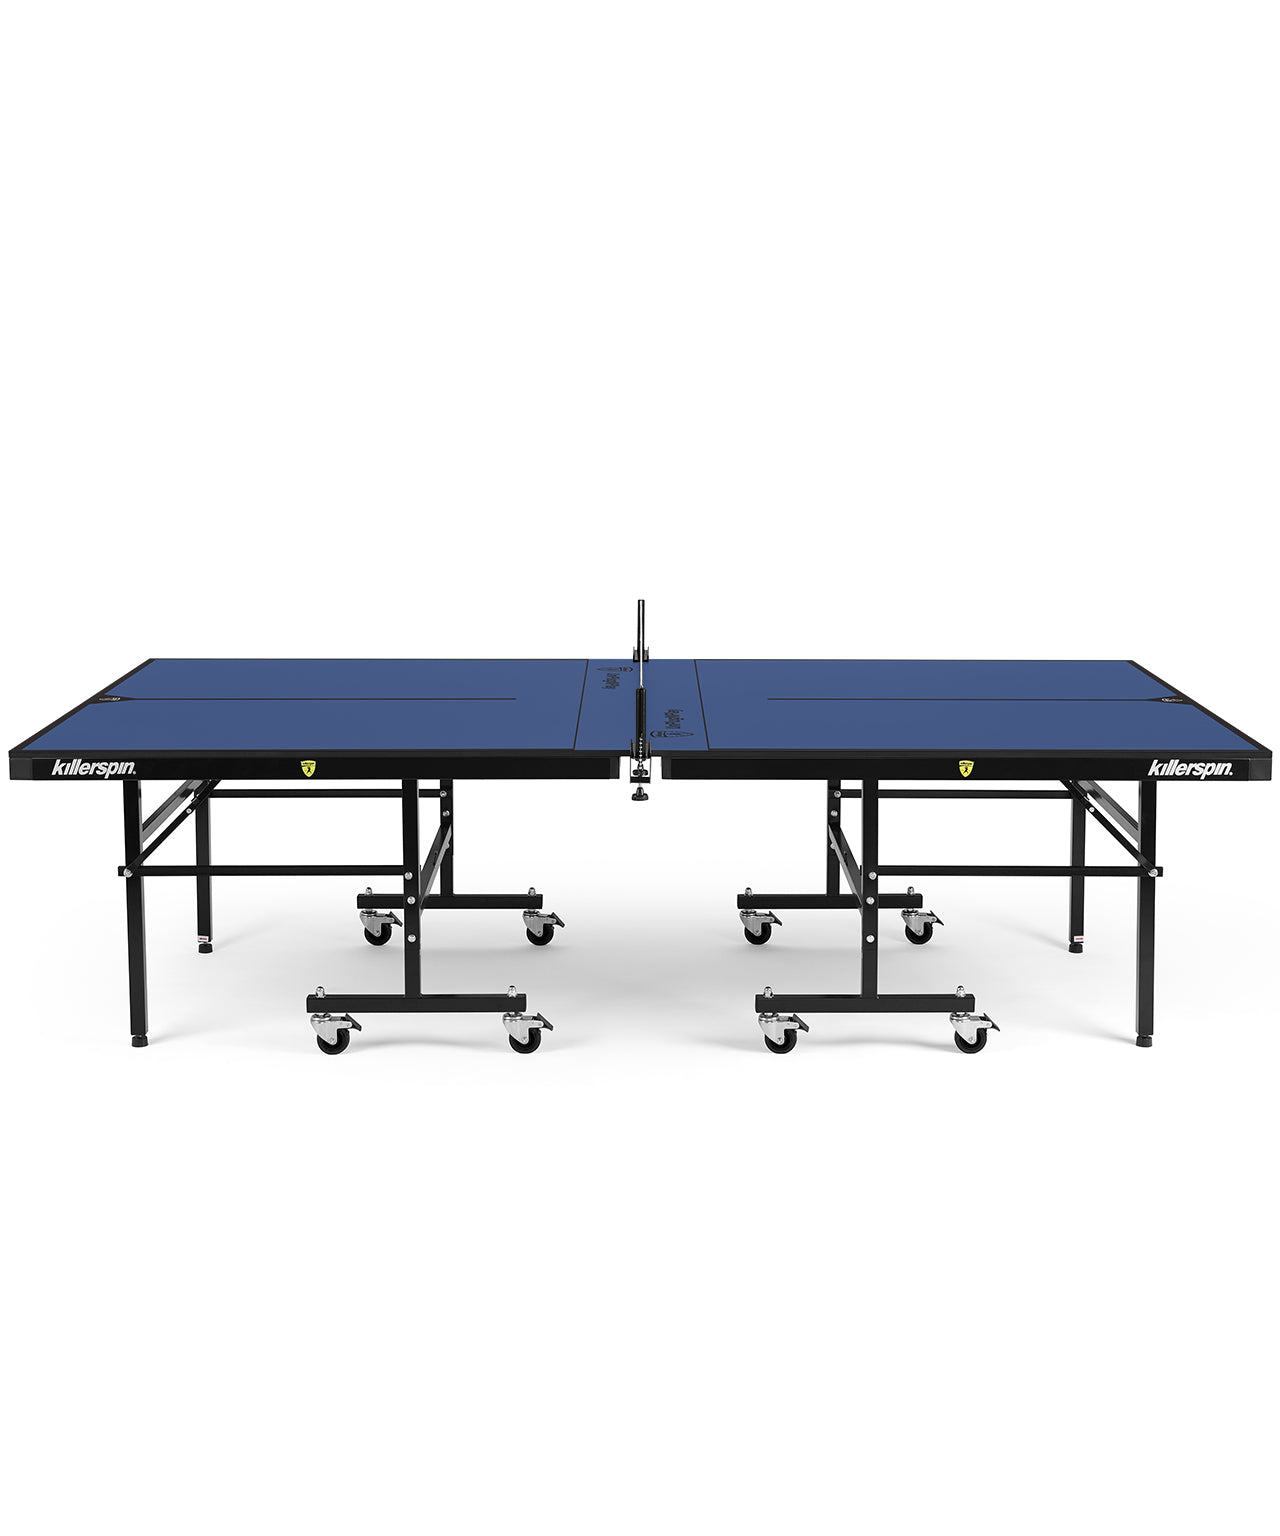 Killerspin Indoor Ping Pong Table UnPlugNPlay415 DeepBlu Black frame Blue top model 2020 side